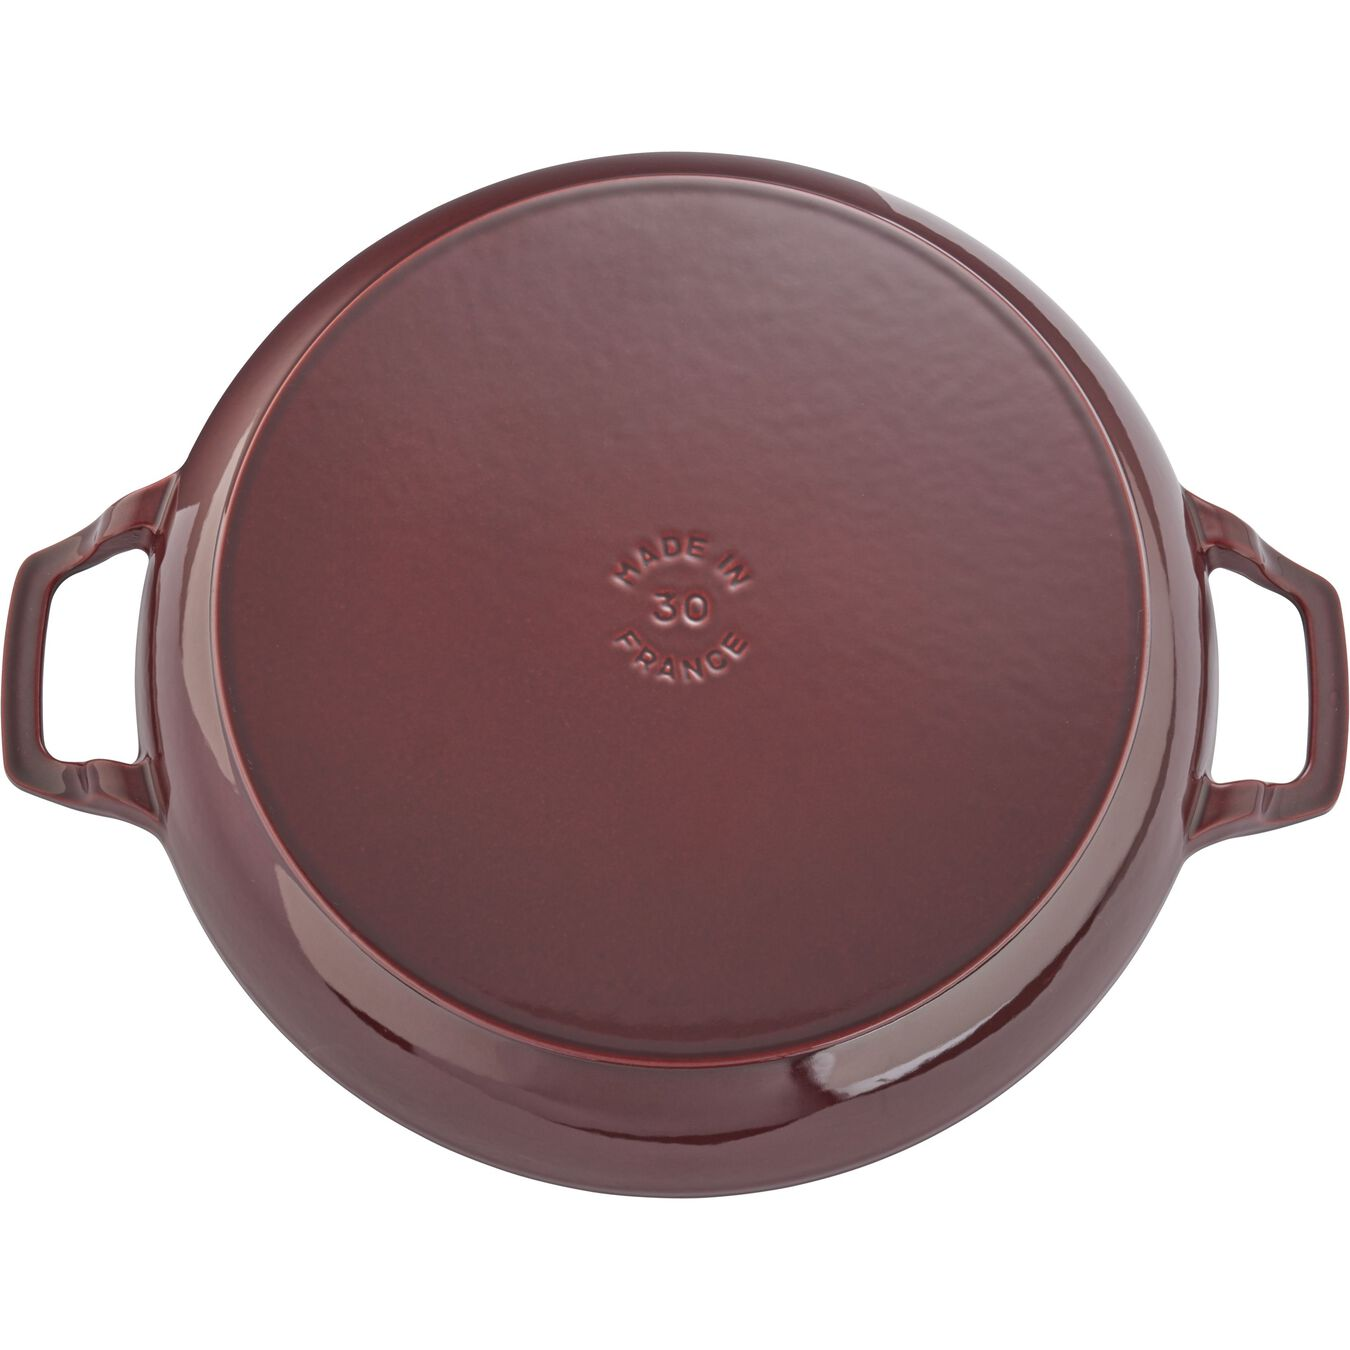 12-inch, Saute pan with glass lid, grenadine,,large 3